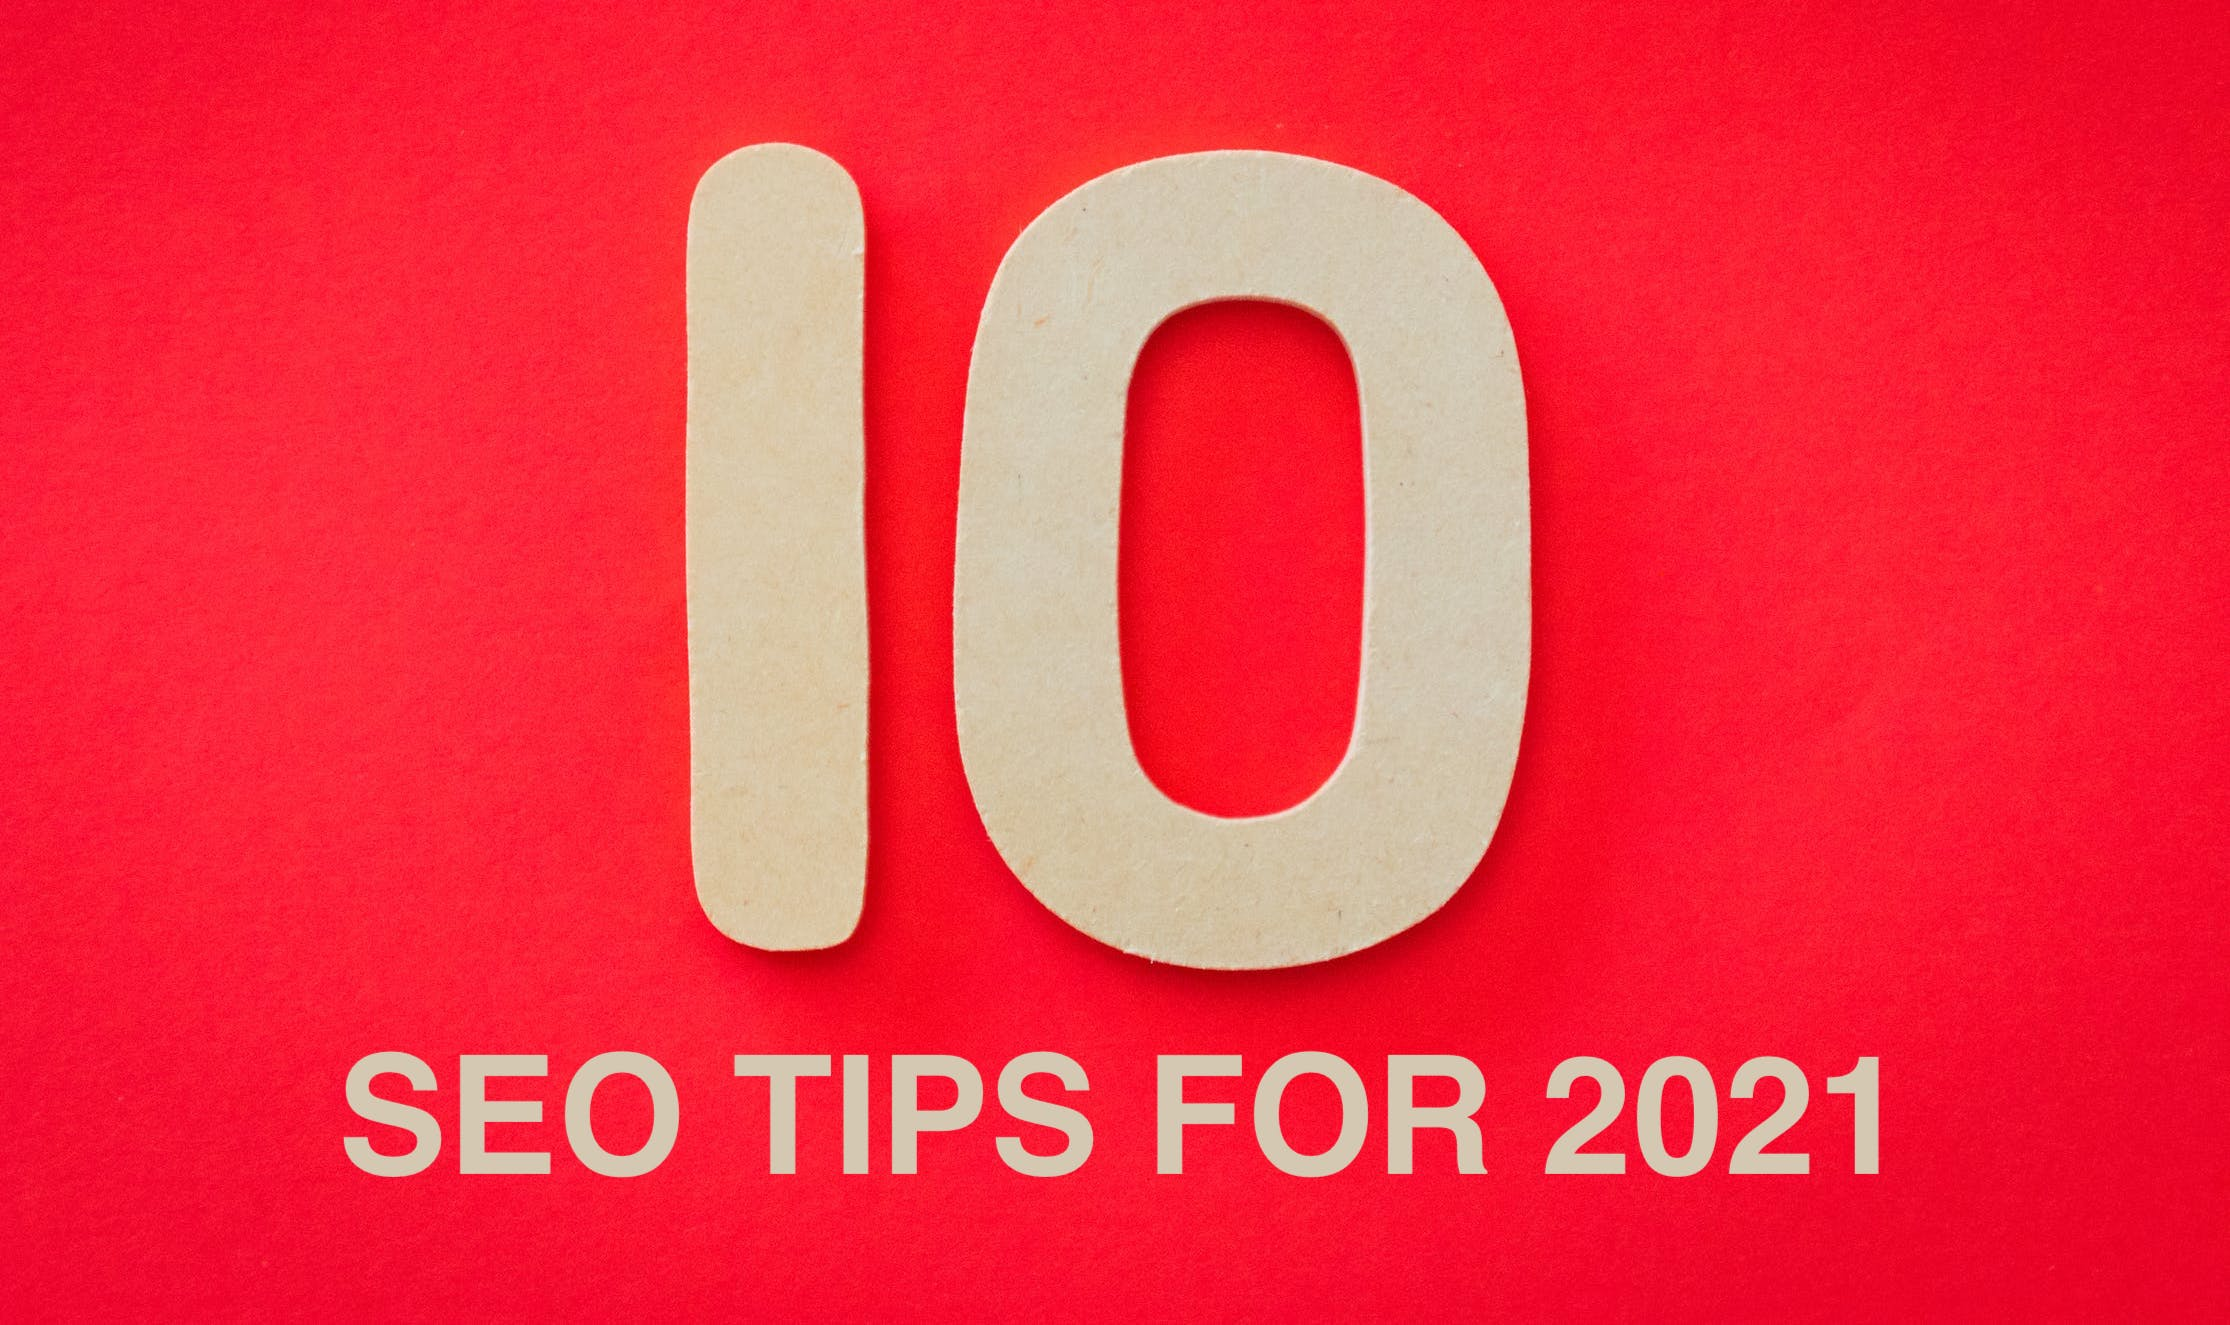 10 SEO Tips to Kick-Start in 2021 for your Small Business